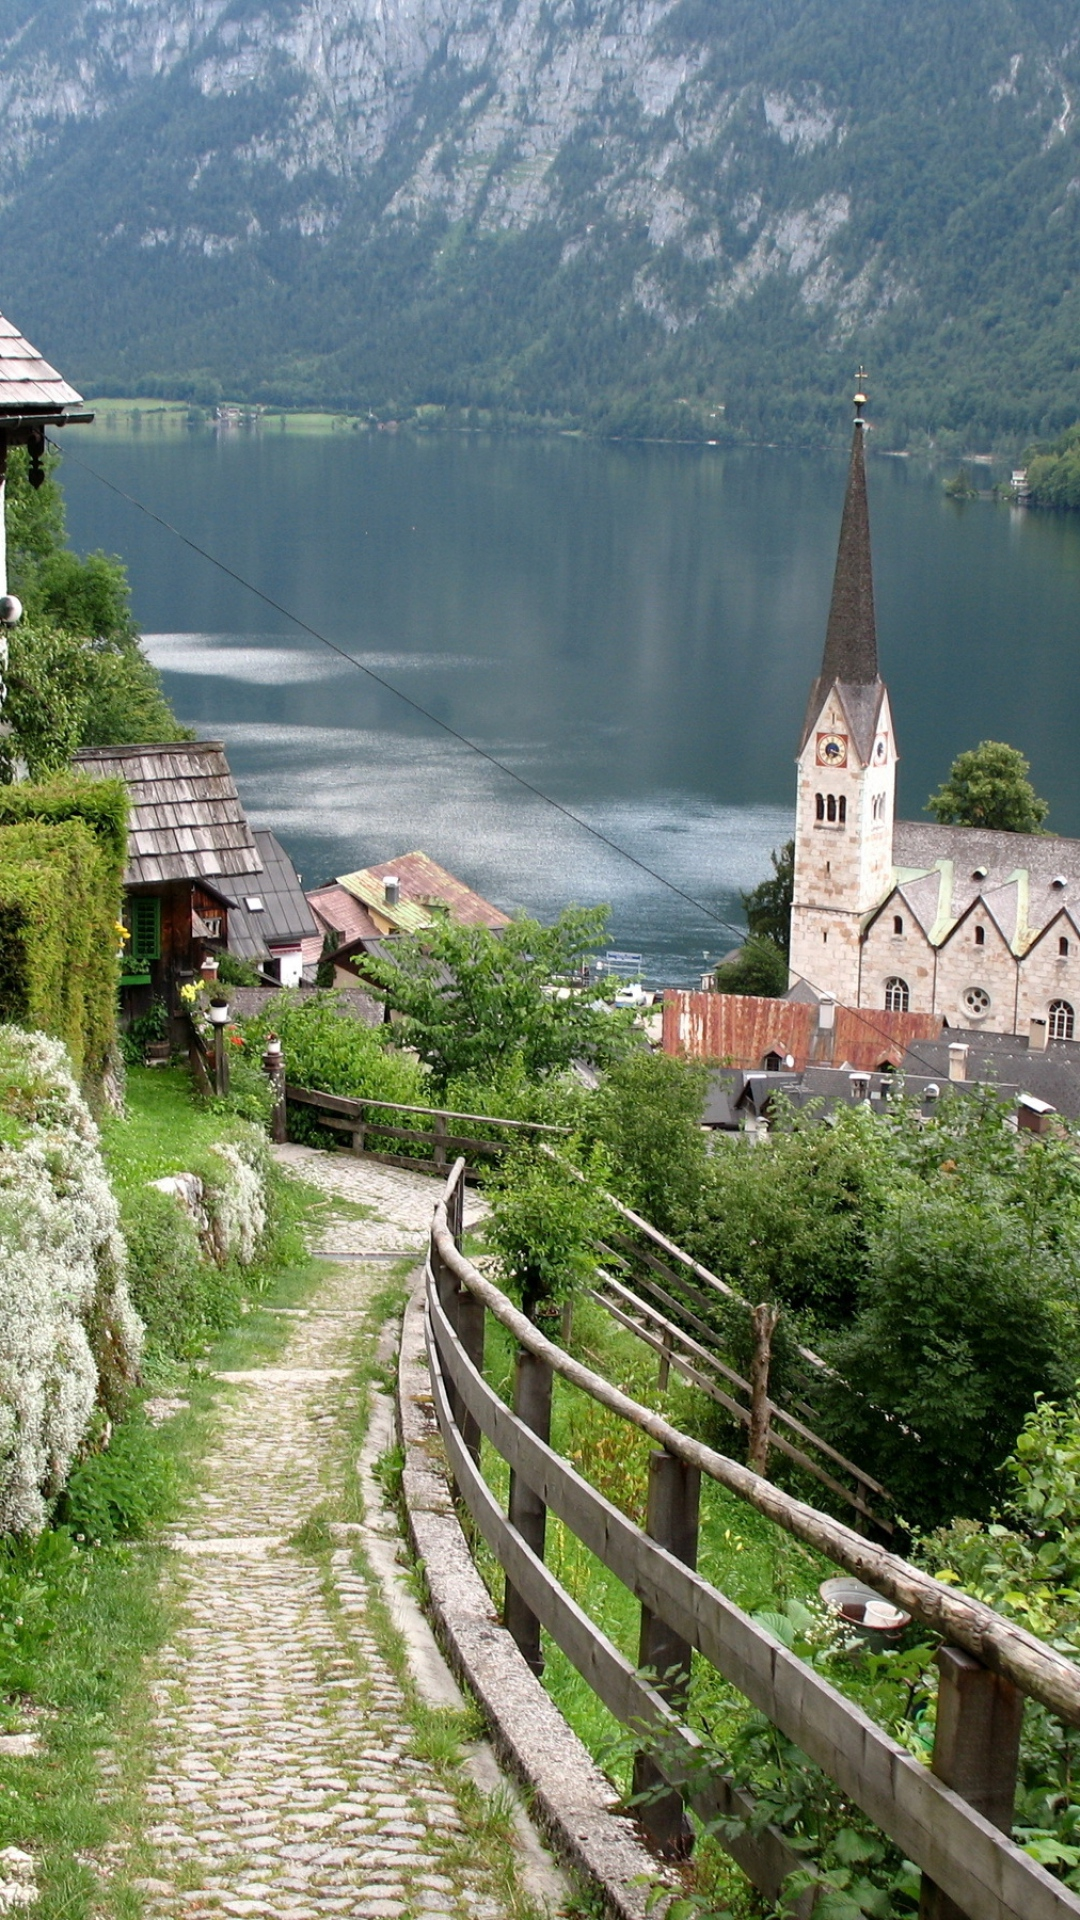 austria-lake-home-structures-mountains-wallpaper-wp3602814